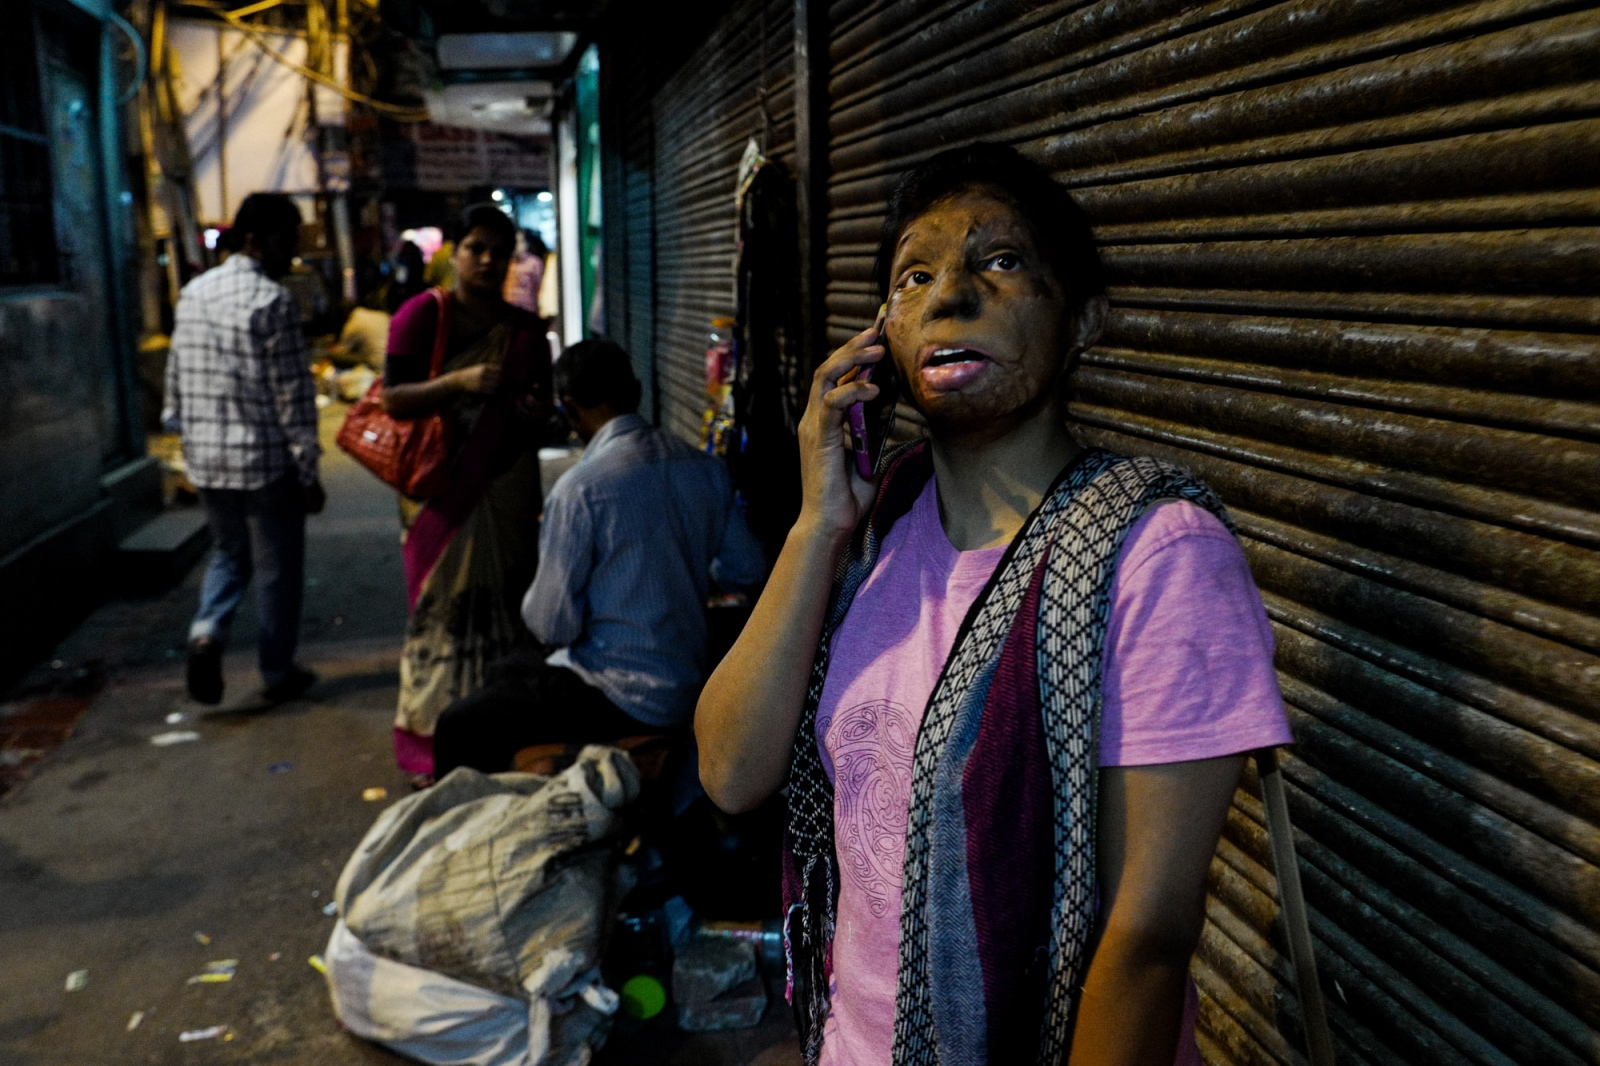 Delhi, 26 October 2015, Rupa talking at phone in chandni chowk market, famous for its fabrics.